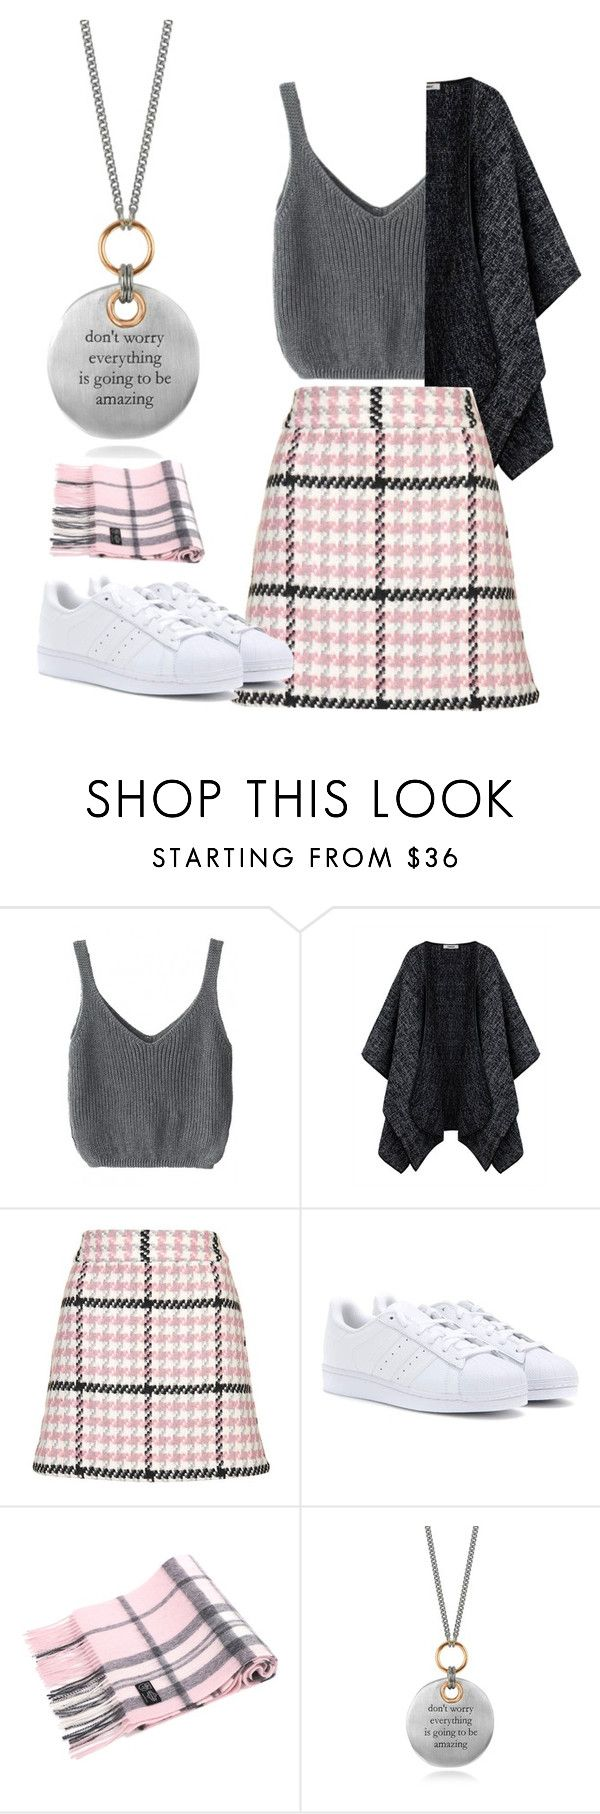 """Untitled #365"" by sirps on Polyvore featuring Topshop, adidas and Bjørg"